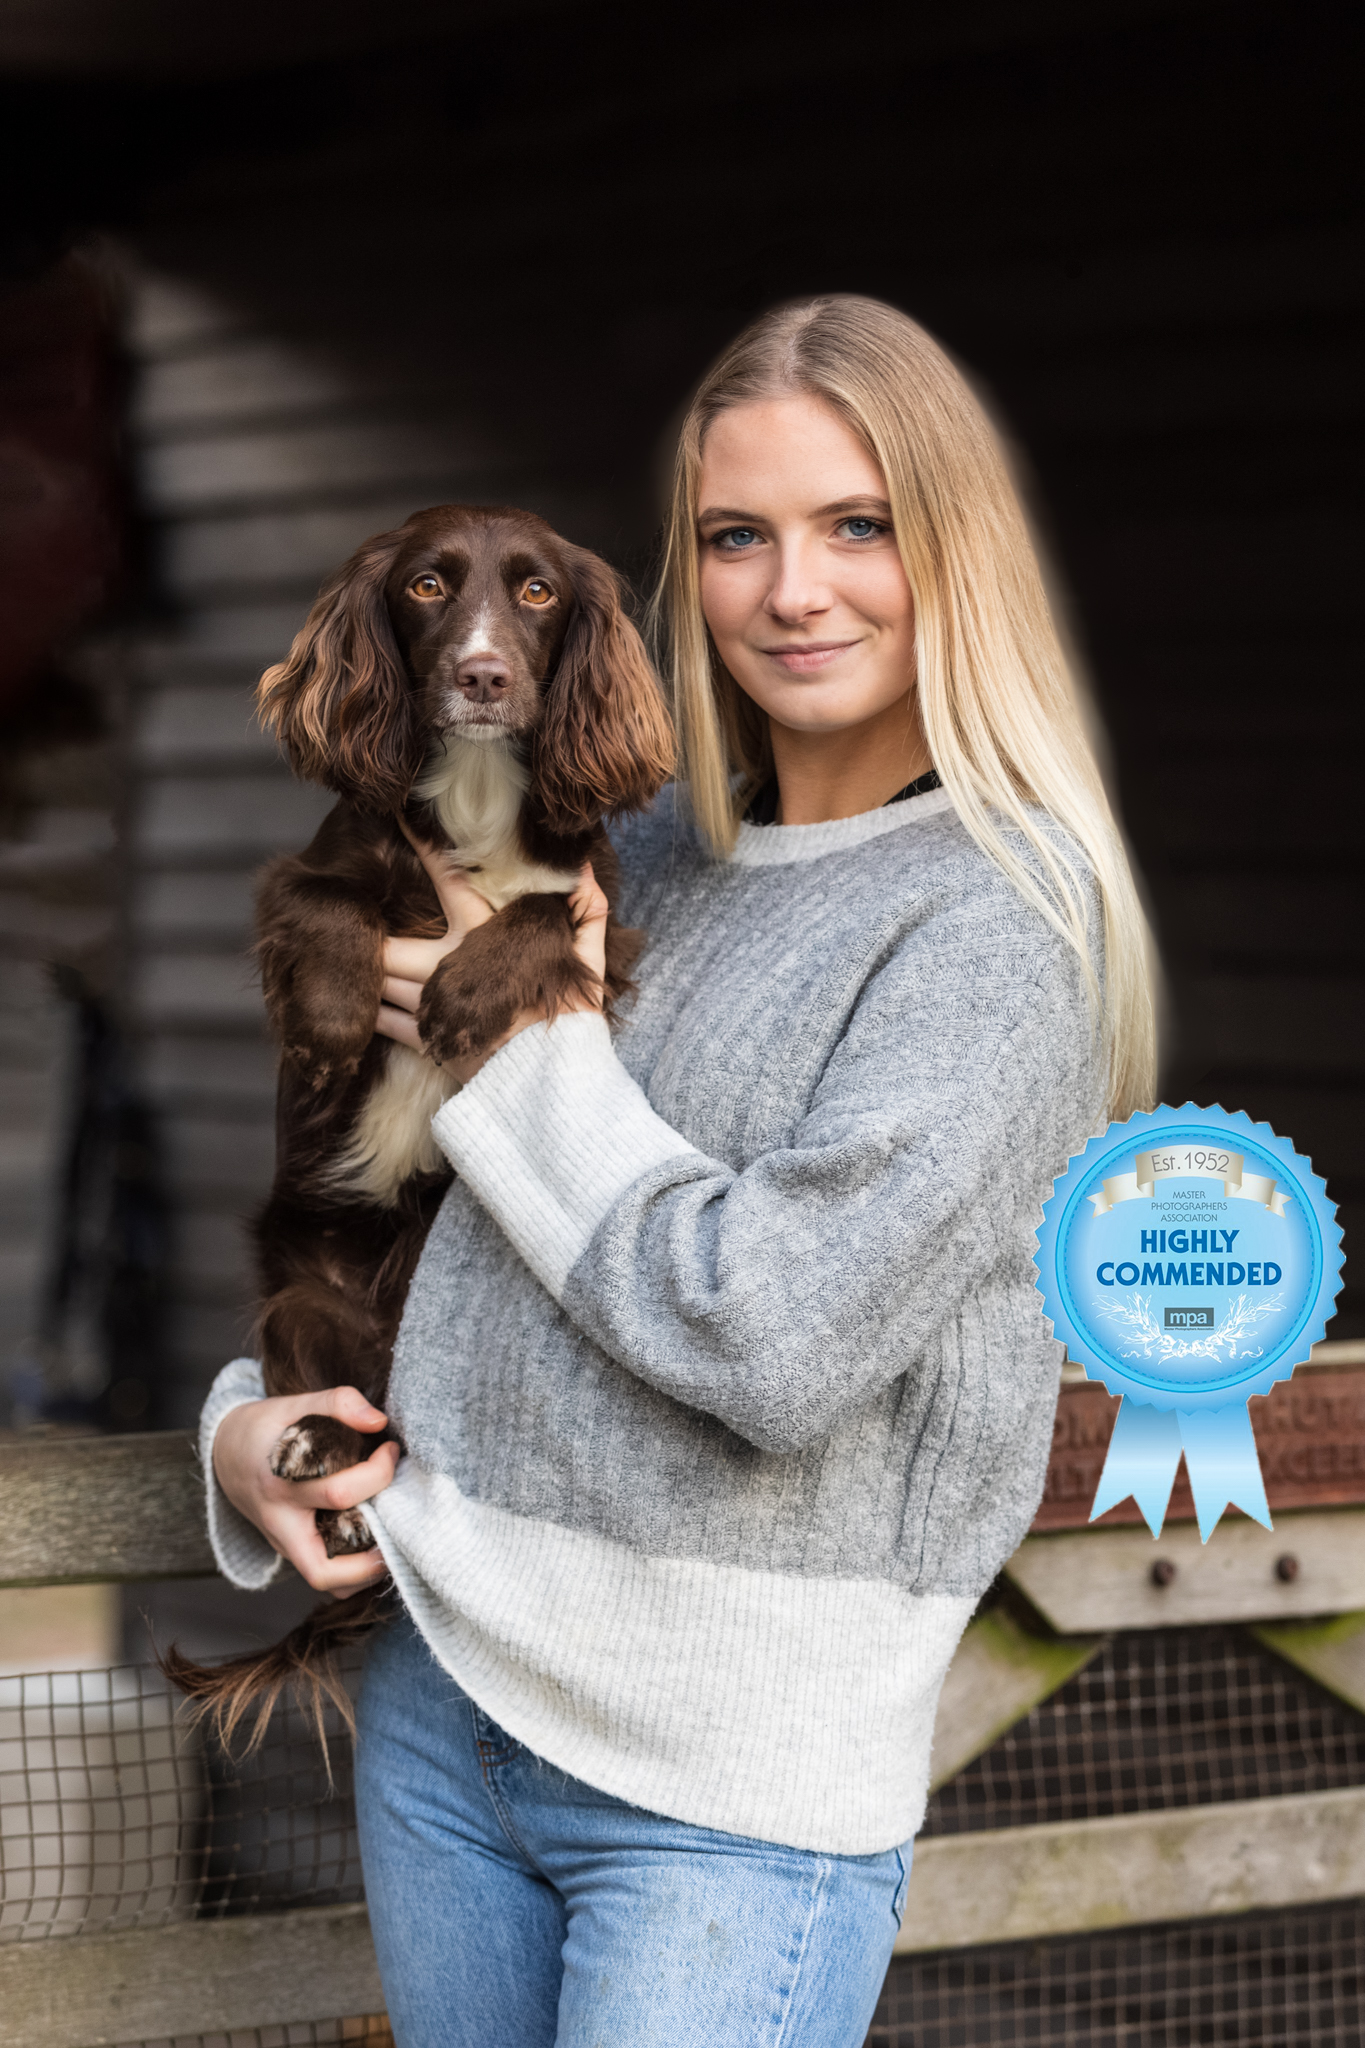 Dog_and_girl_portrait_award_winning_suss